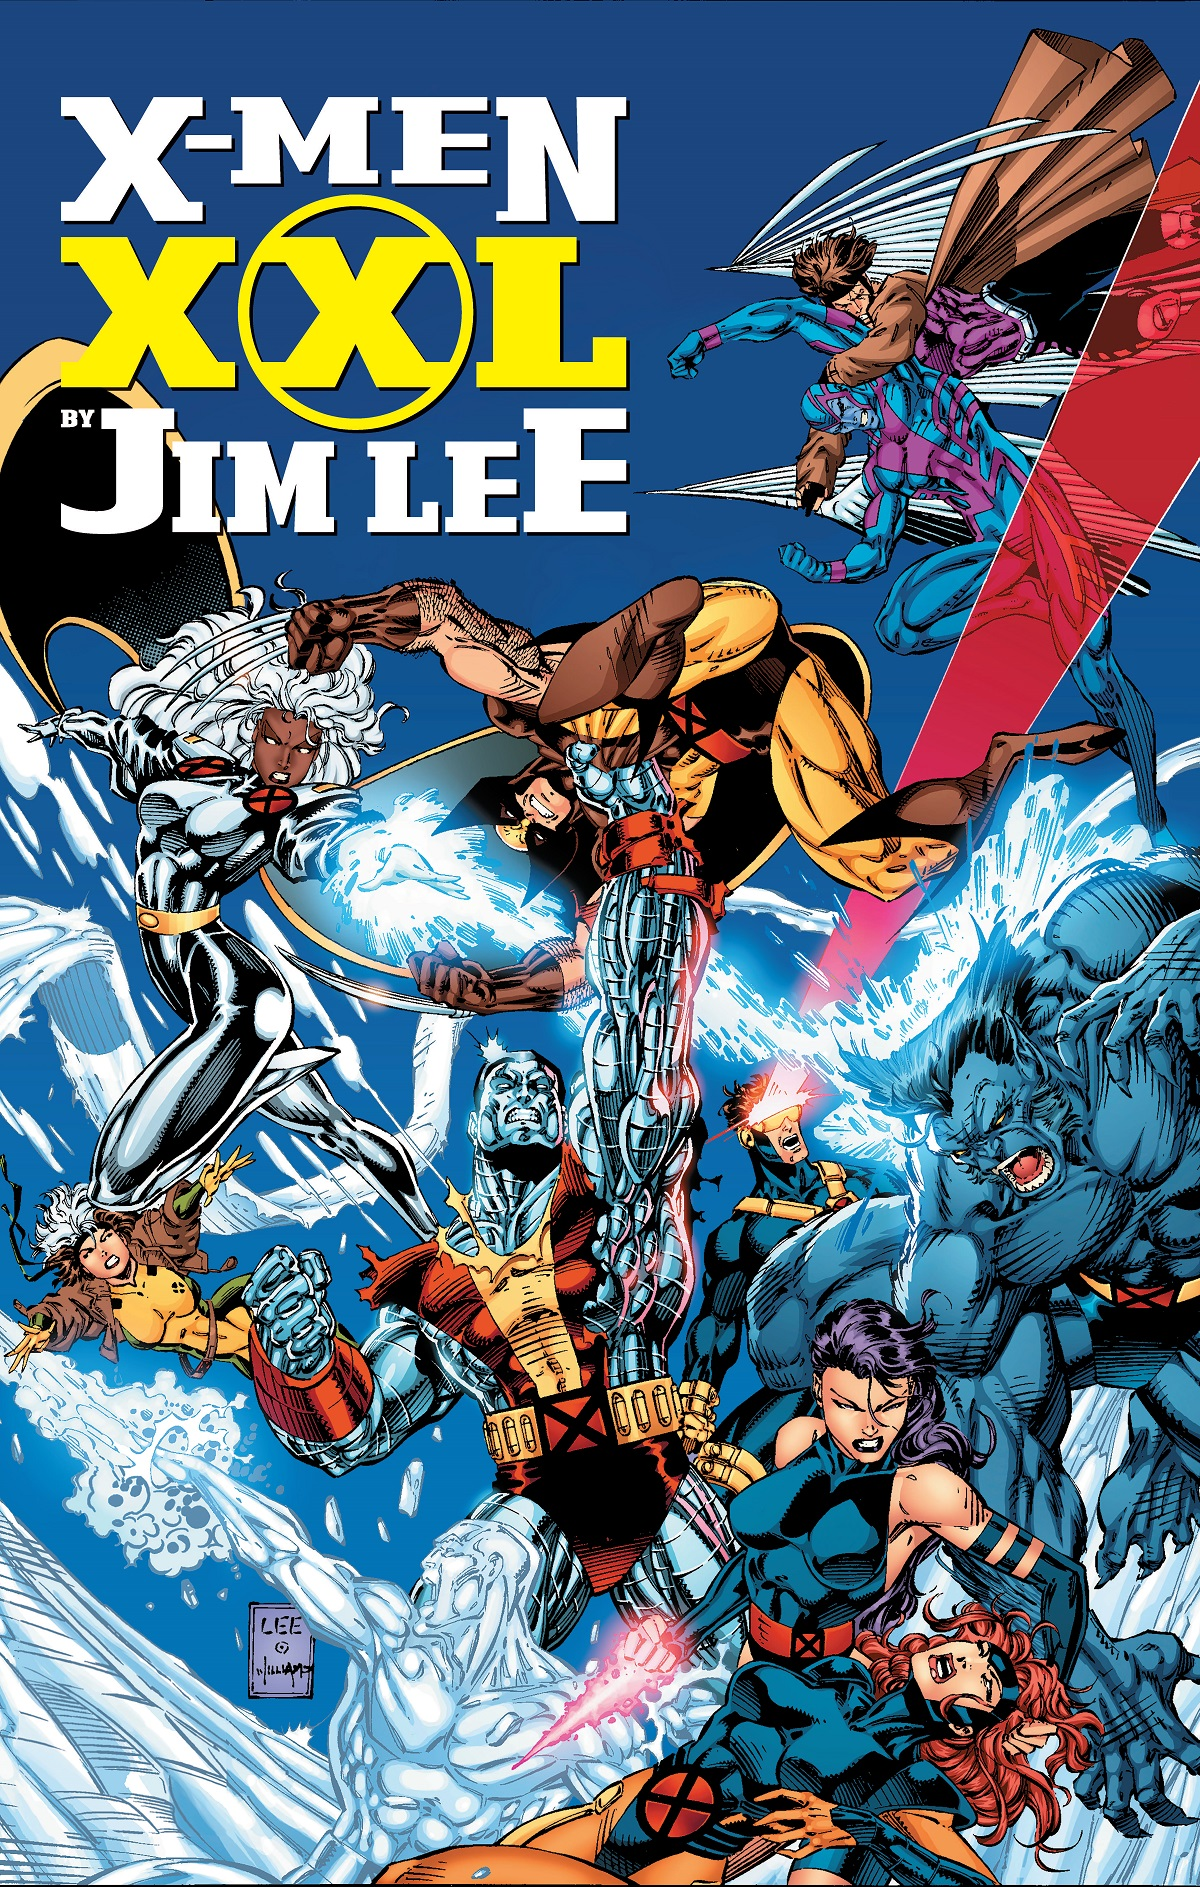 X-Men XXL By Jim Lee (Hardcover)